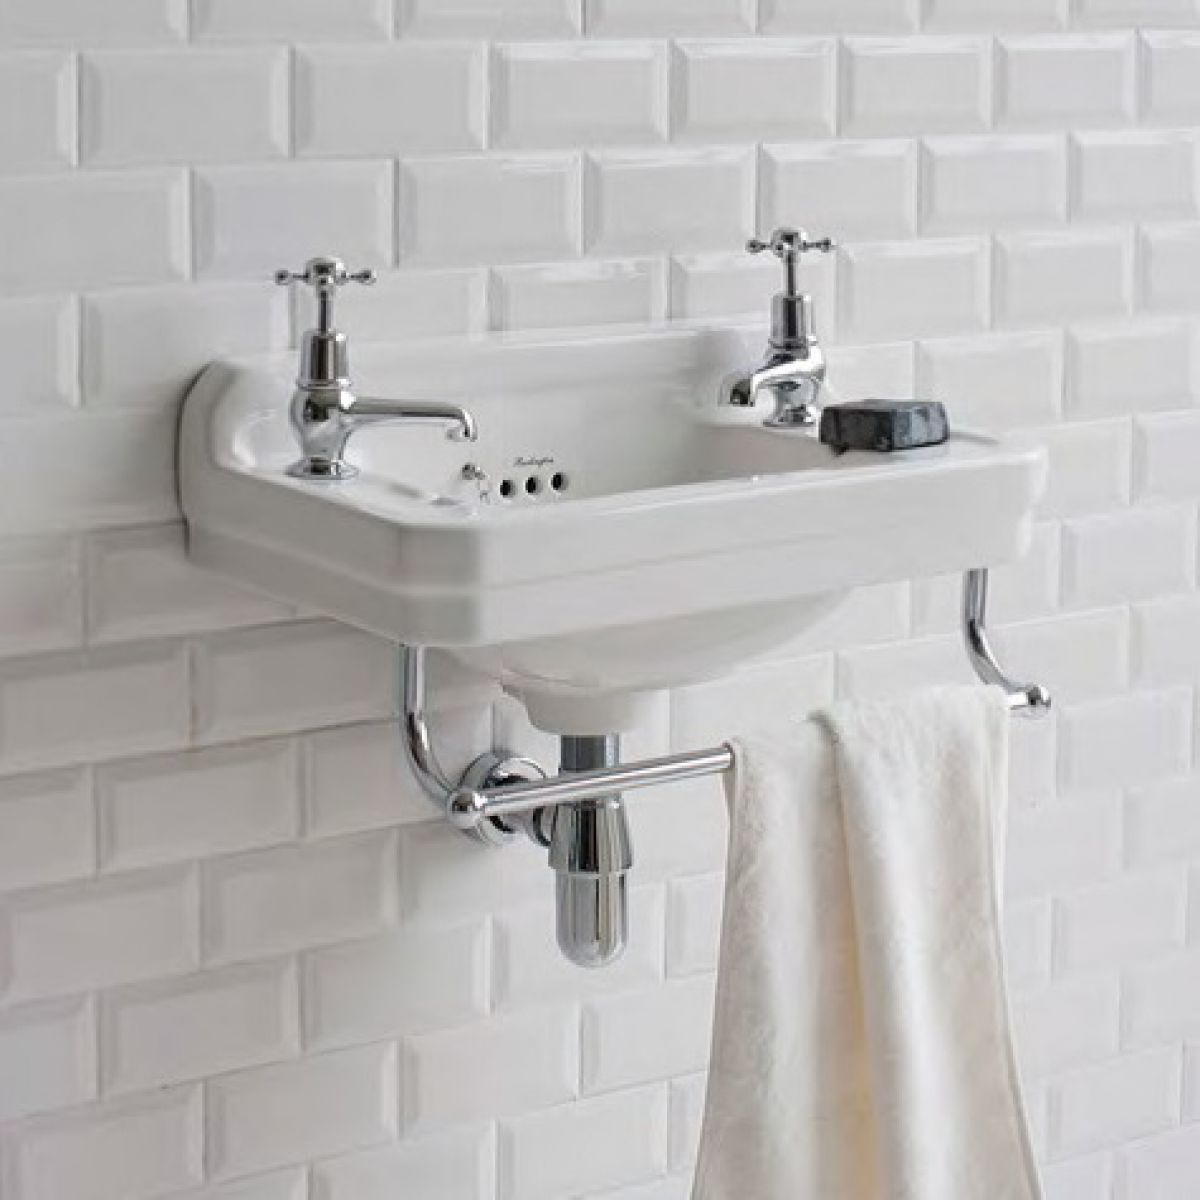 Burlington Corner Sink : Burlington Edwardian Cloakroom Basin : UK Bathrooms